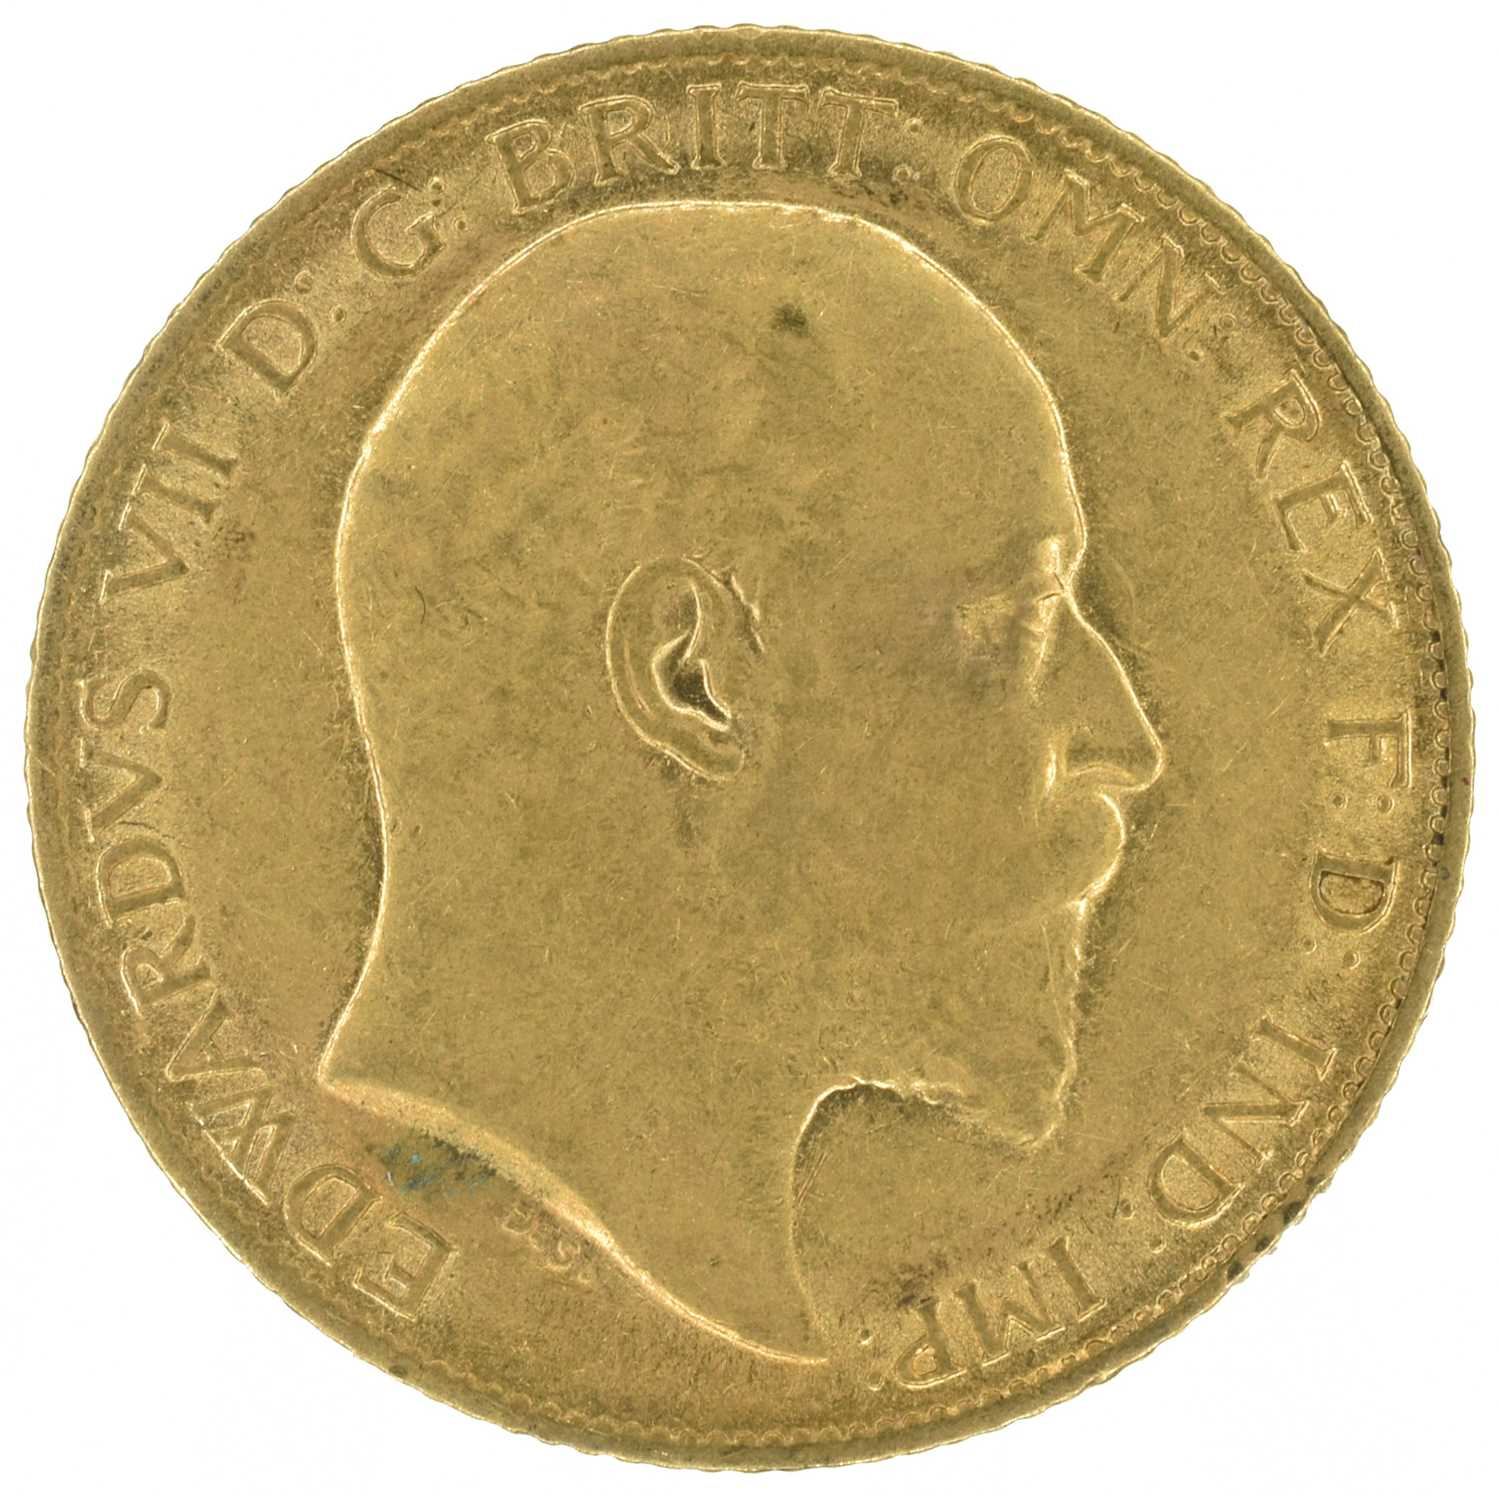 Lot 52 - Two King Edward VII, Half-Sovereigns, 1905 and 1906 (2).